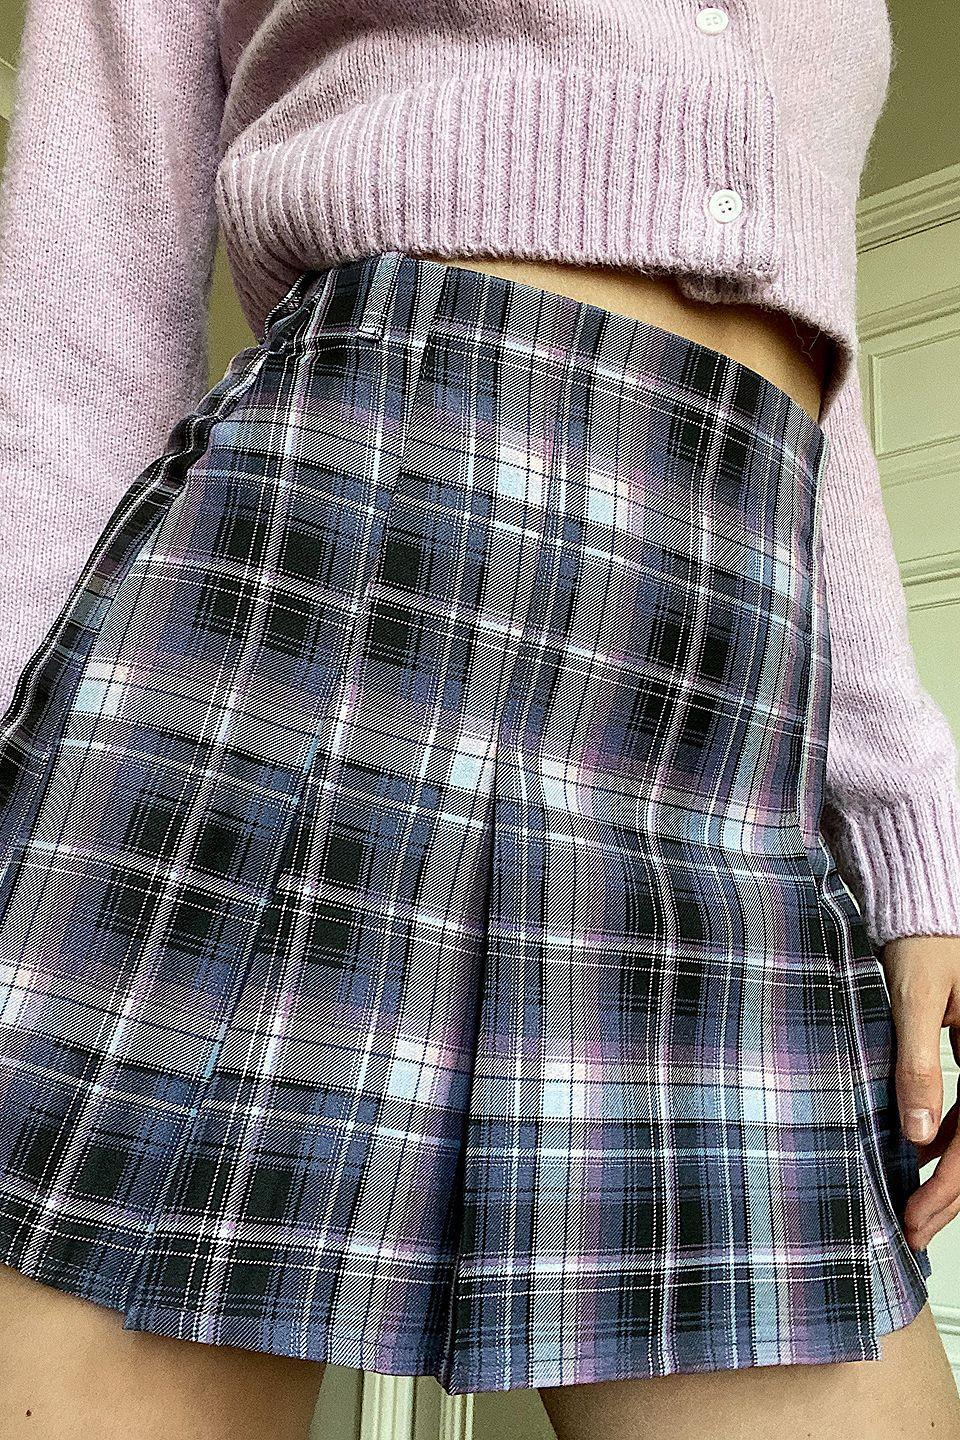 """<p><a href=""""https://www.urbanoutfitters.com/fr-fr/shop/uo-boxy-pleat-ombre-check-kilt?category=SEARCHRESULTS&color=066&searchparams=q%3Dcarreaux&type=REGULAR&quantity=1"""" rel=""""nofollow noopener"""" target=""""_blank"""" data-ylk=""""slk:Acheter chez Urban Outfitters - 49 €"""" class=""""link rapid-noclick-resp"""">Acheter chez Urban Outfitters - 49 €</a></p>"""